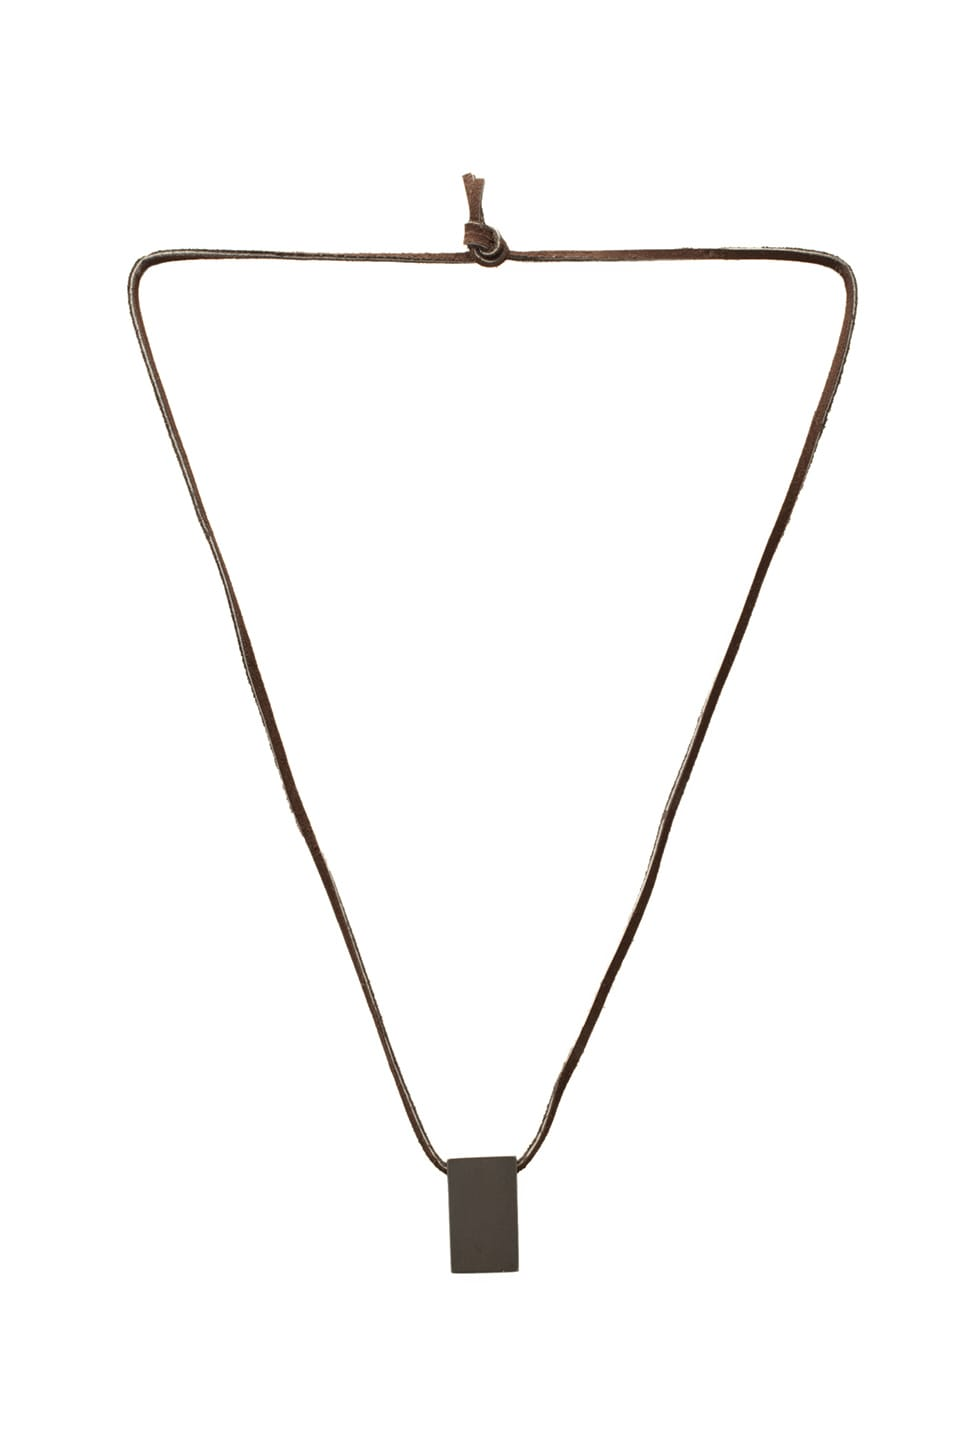 Marmol Radziner Slab Pendant in Dark Bronze